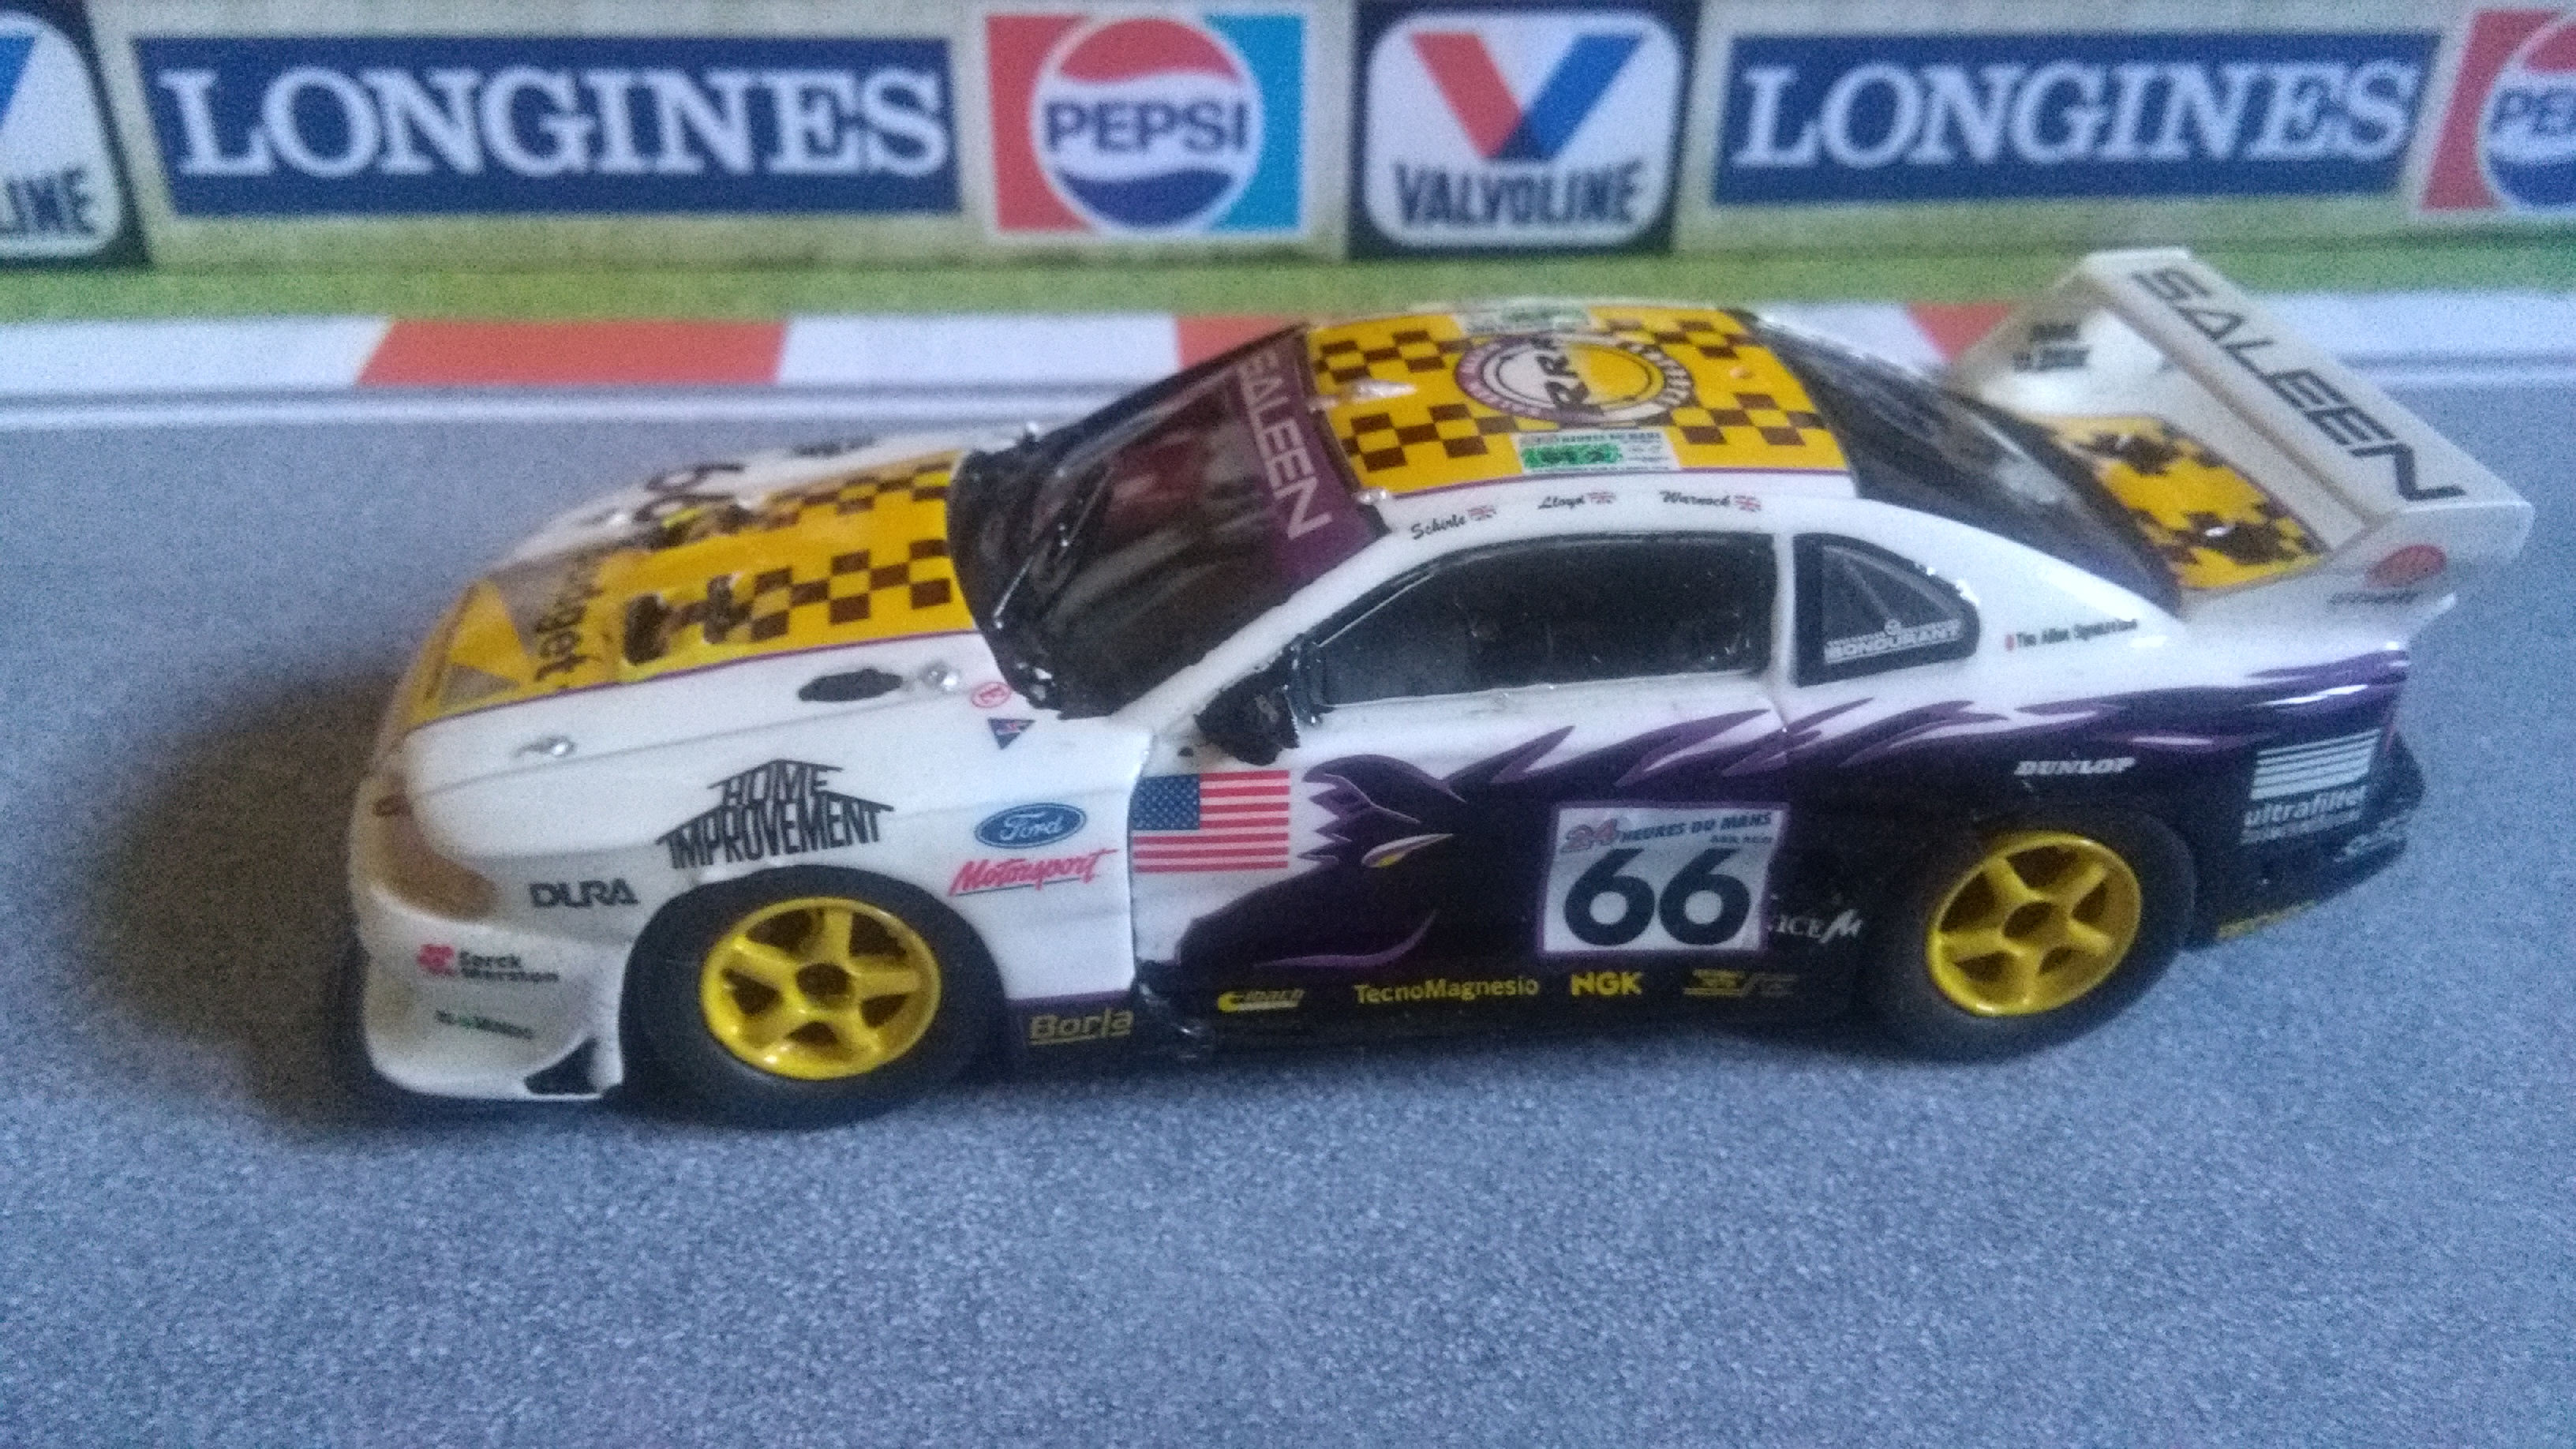 Mustang Saleen Le Mans 1997 #66 (not me) 370562IMG20170713190108